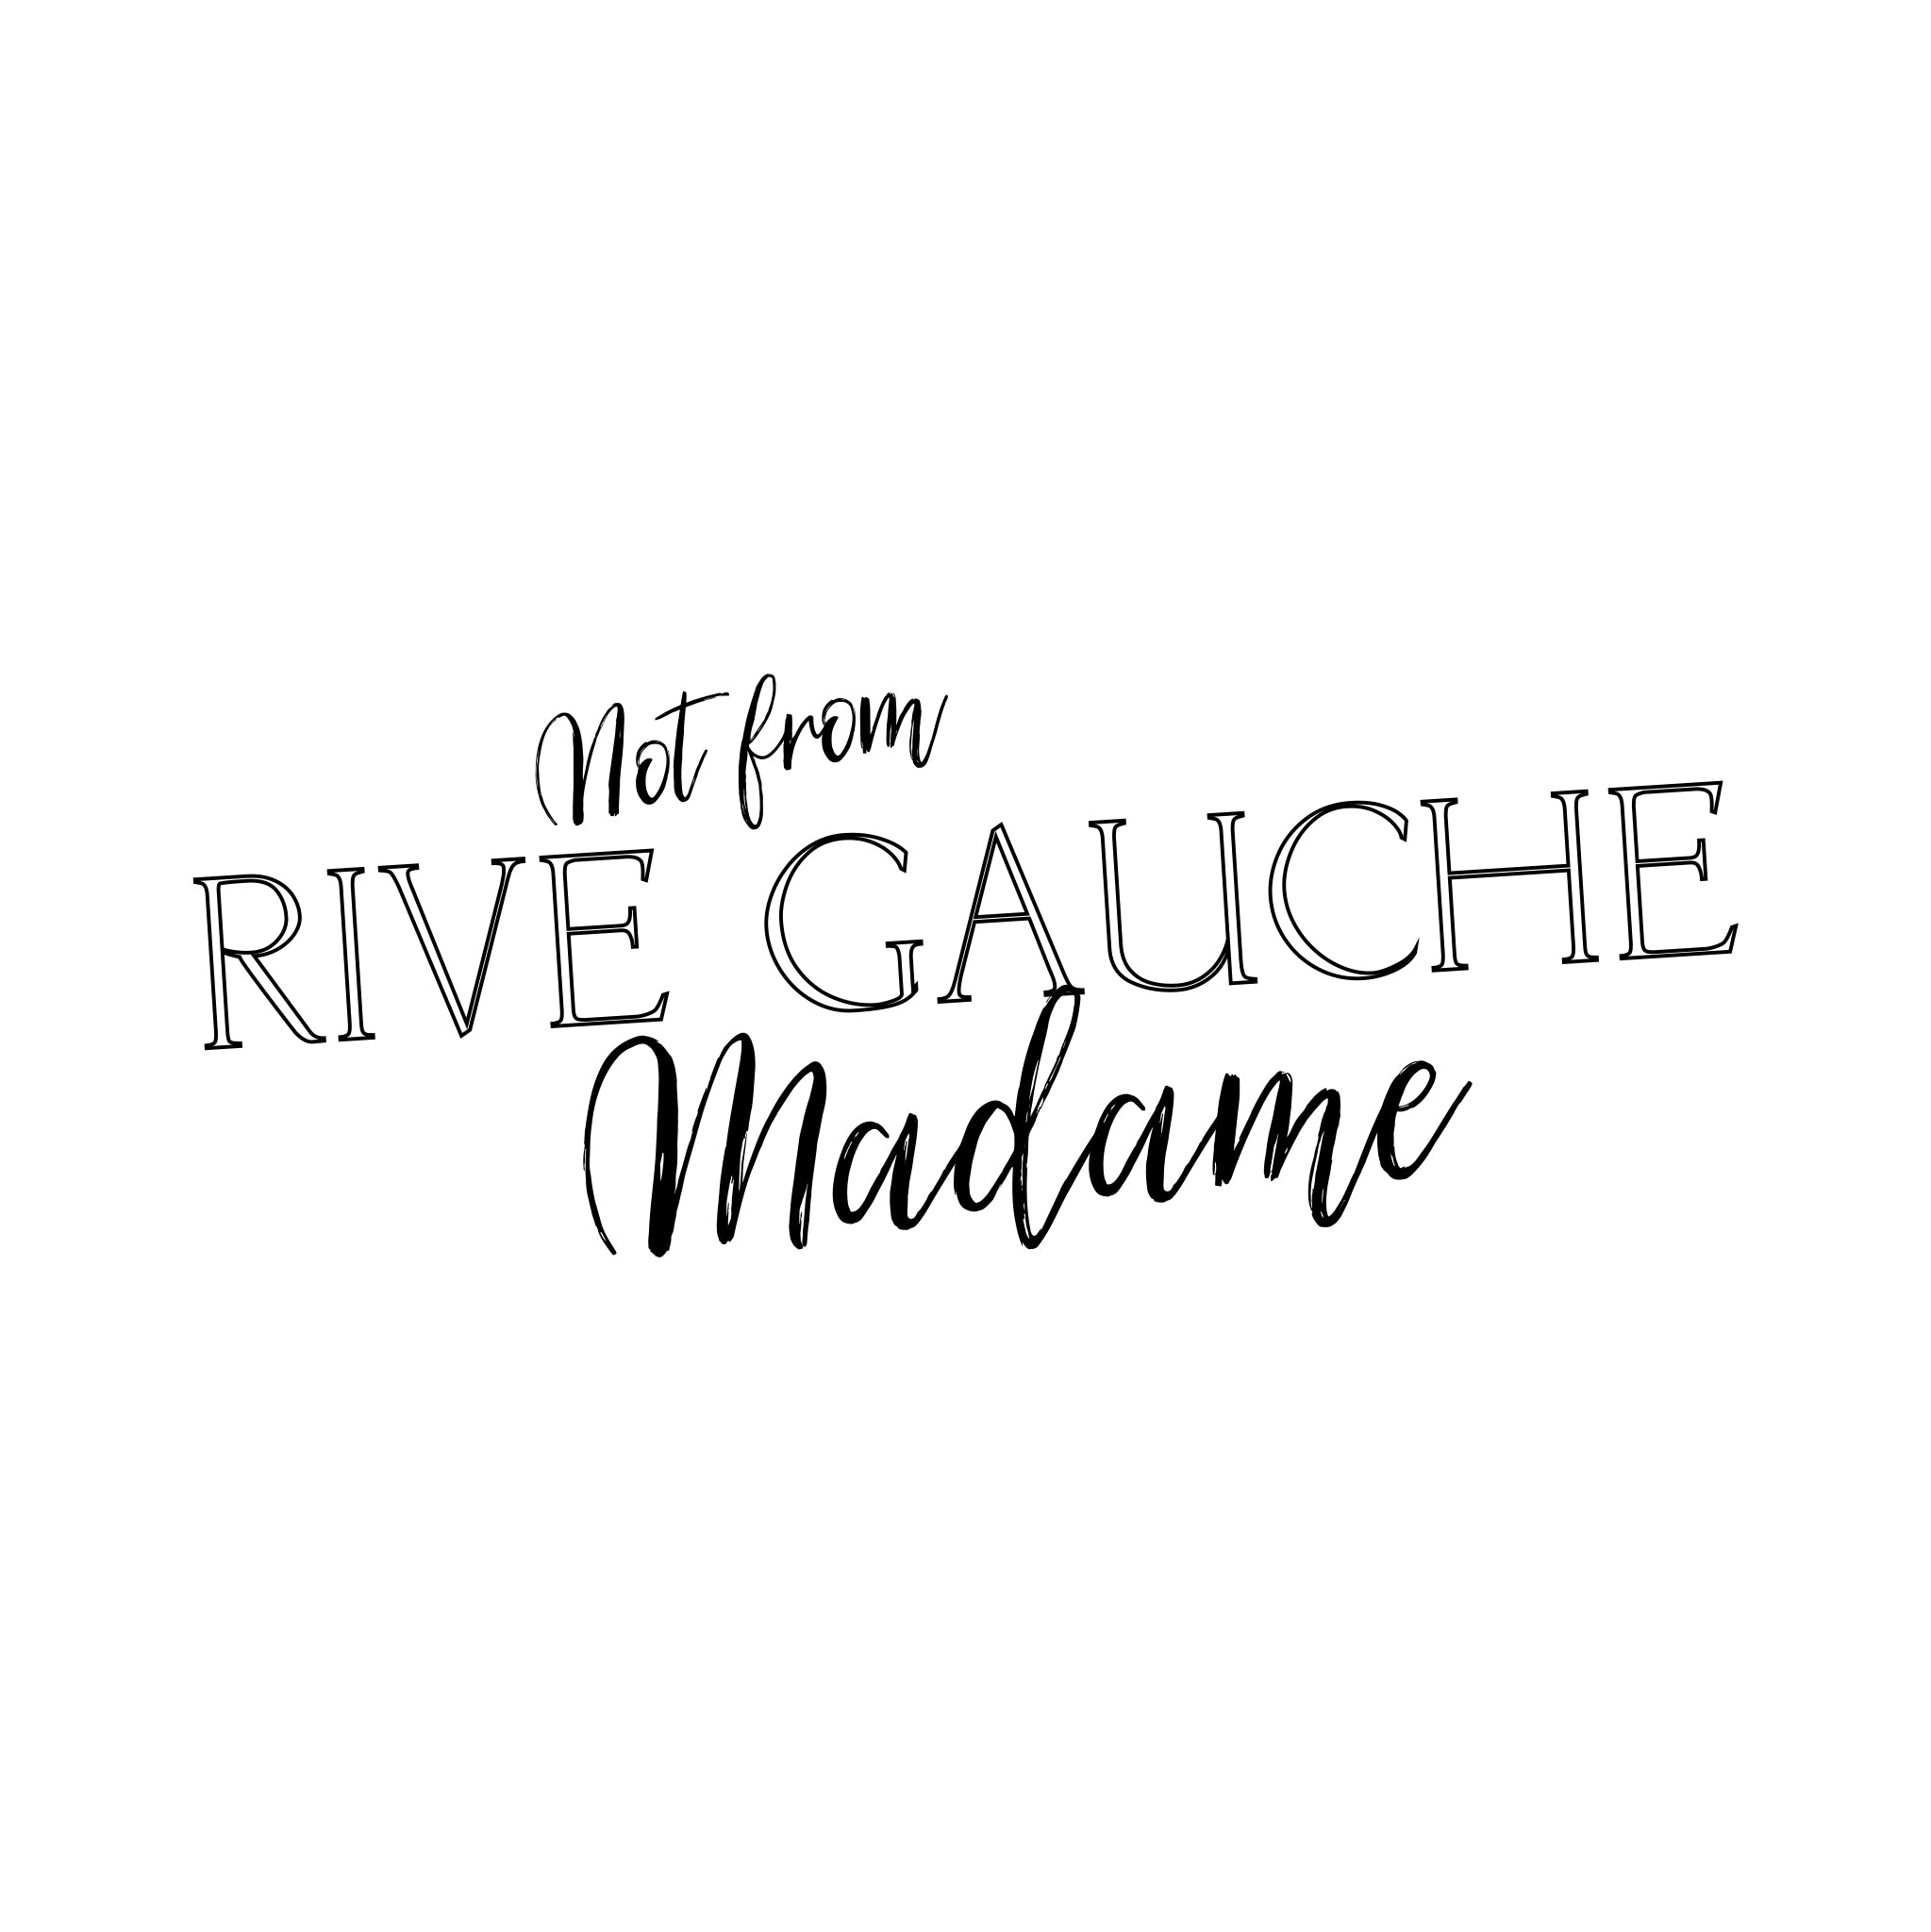 Not from Rive Gauche madame